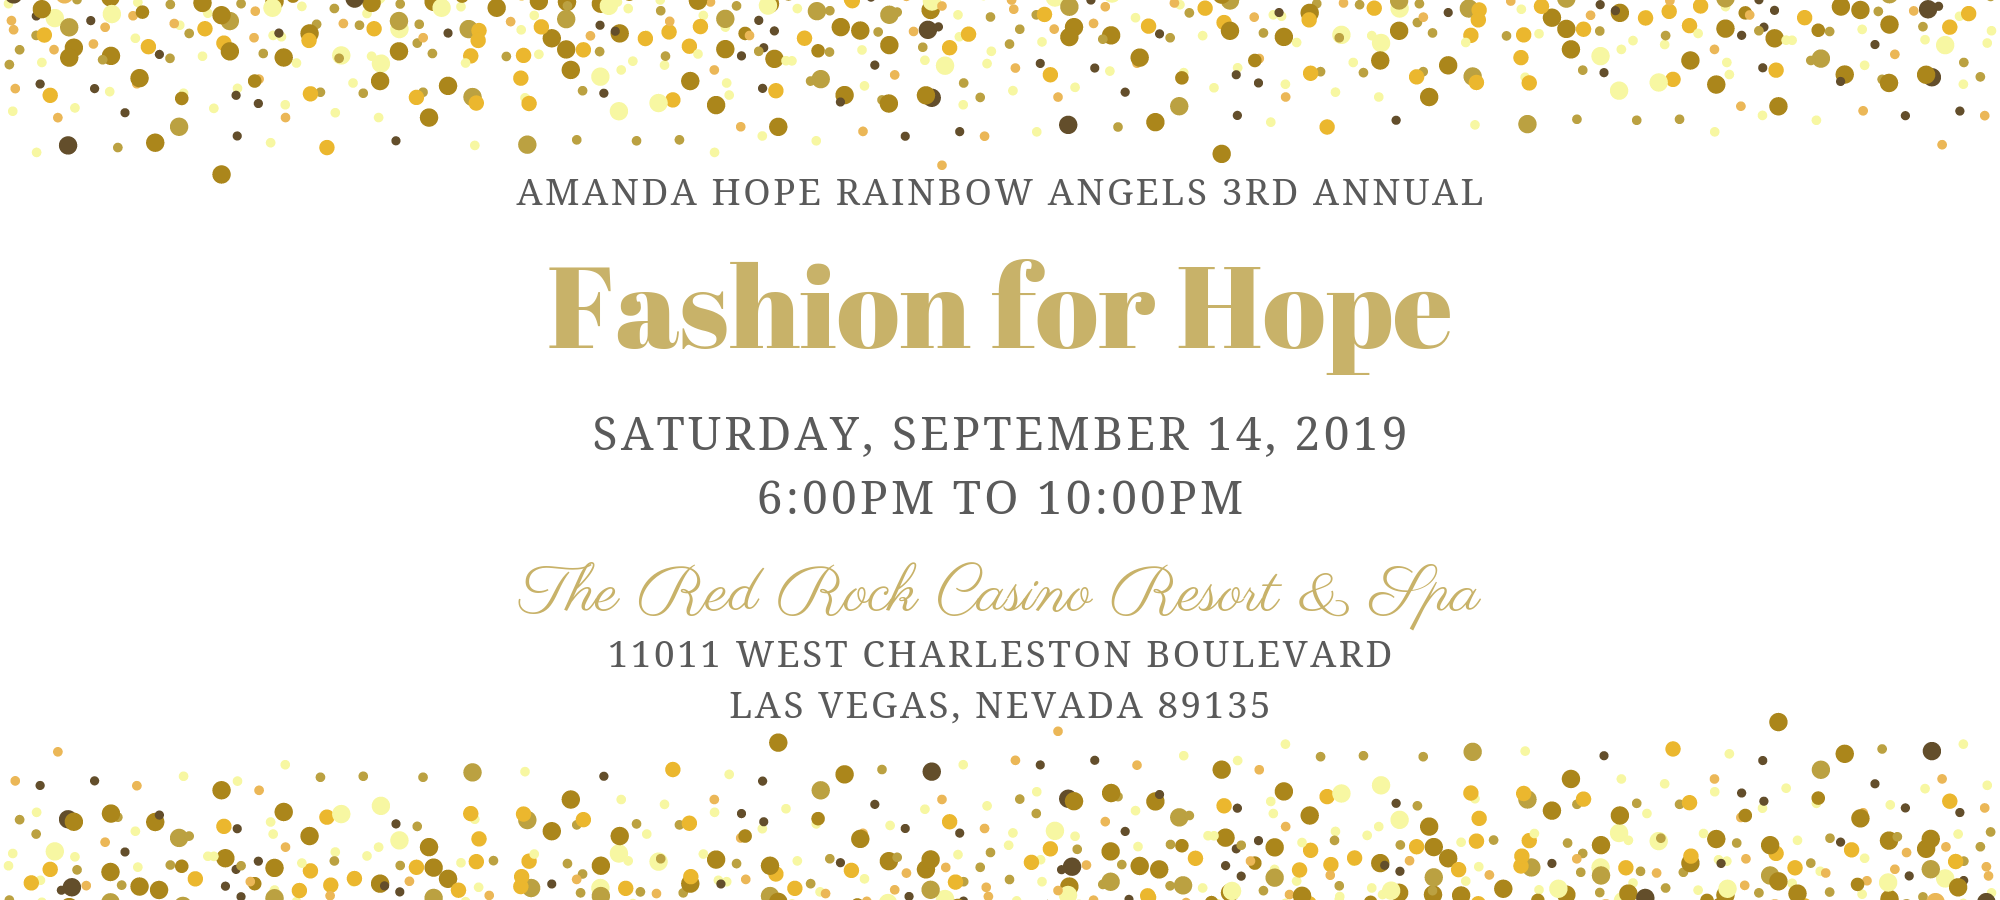 Join us for our 3rd annual Fashion for Hope event in Las Vegas, Nevada! There will be a luxury fashion show and delicious hosted by Kelley Fertitta to benefit our Amanda Hope Nevada programs. We cannot wait to see you there!